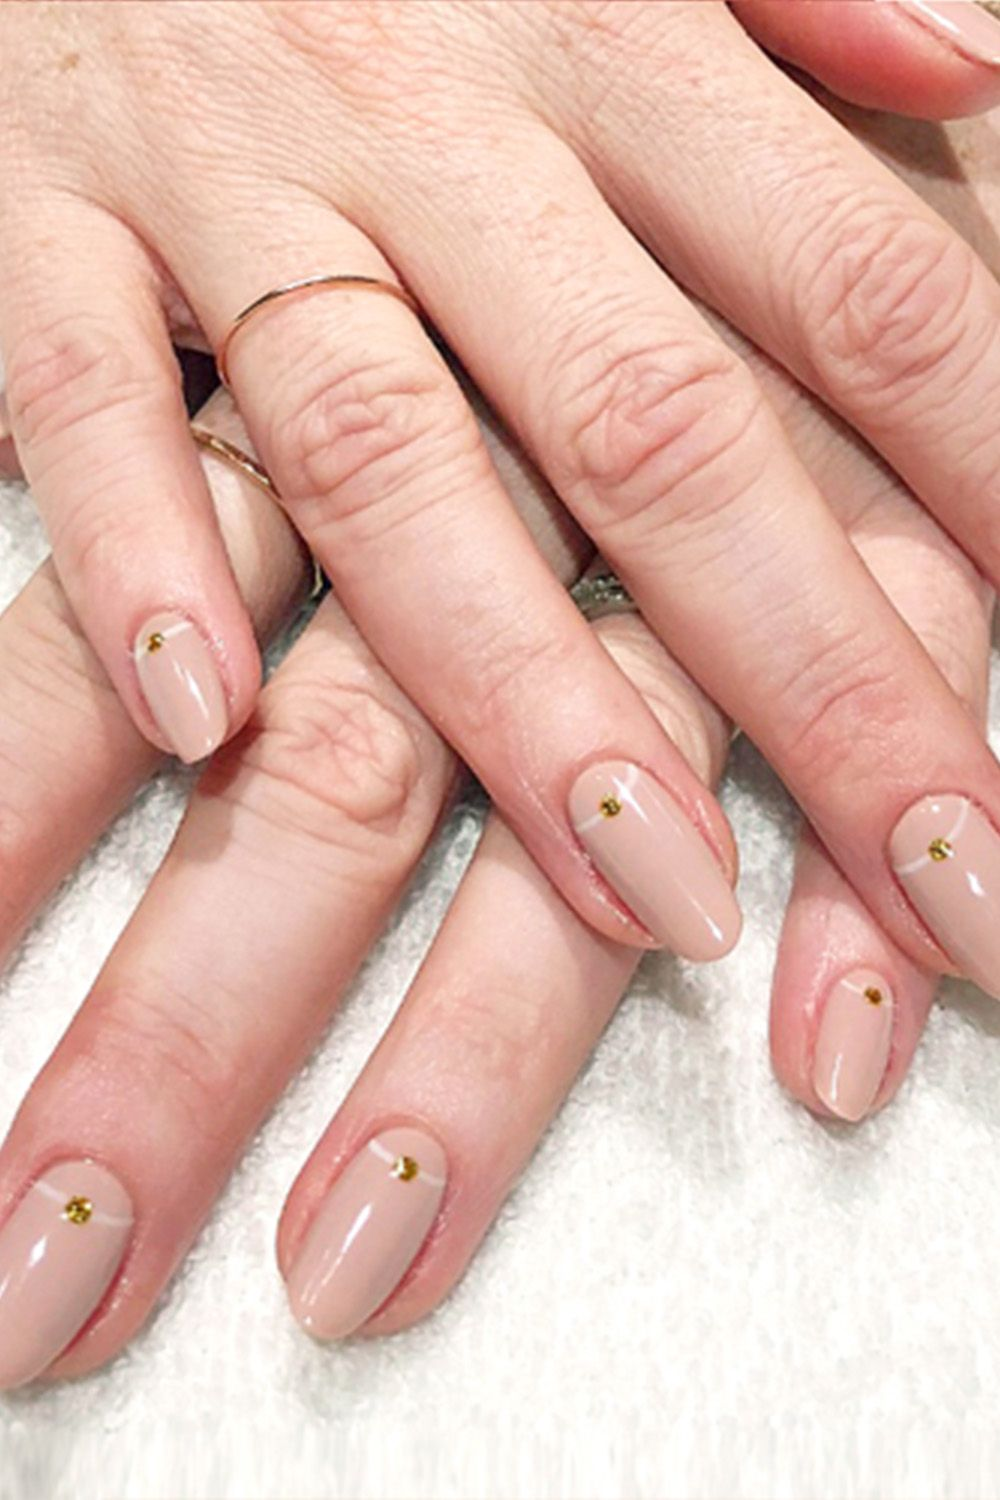 15 Almond Shaped Nail Designs - Cute Ideas for Almond Nails